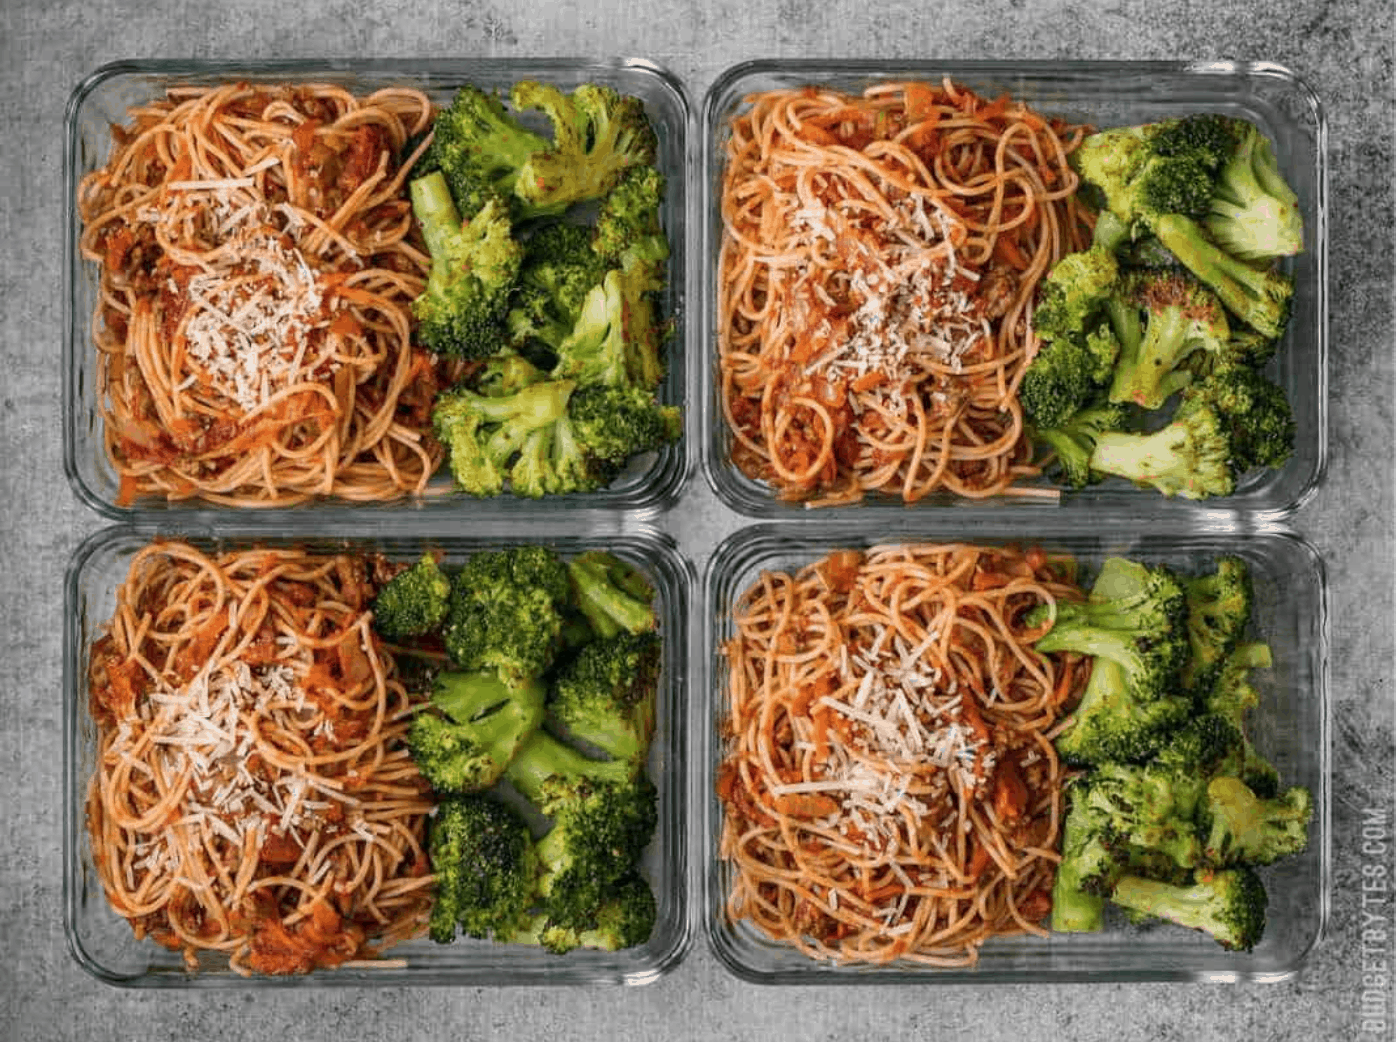 Spaghetti Meal Prep with Oven Roasted Broccoli